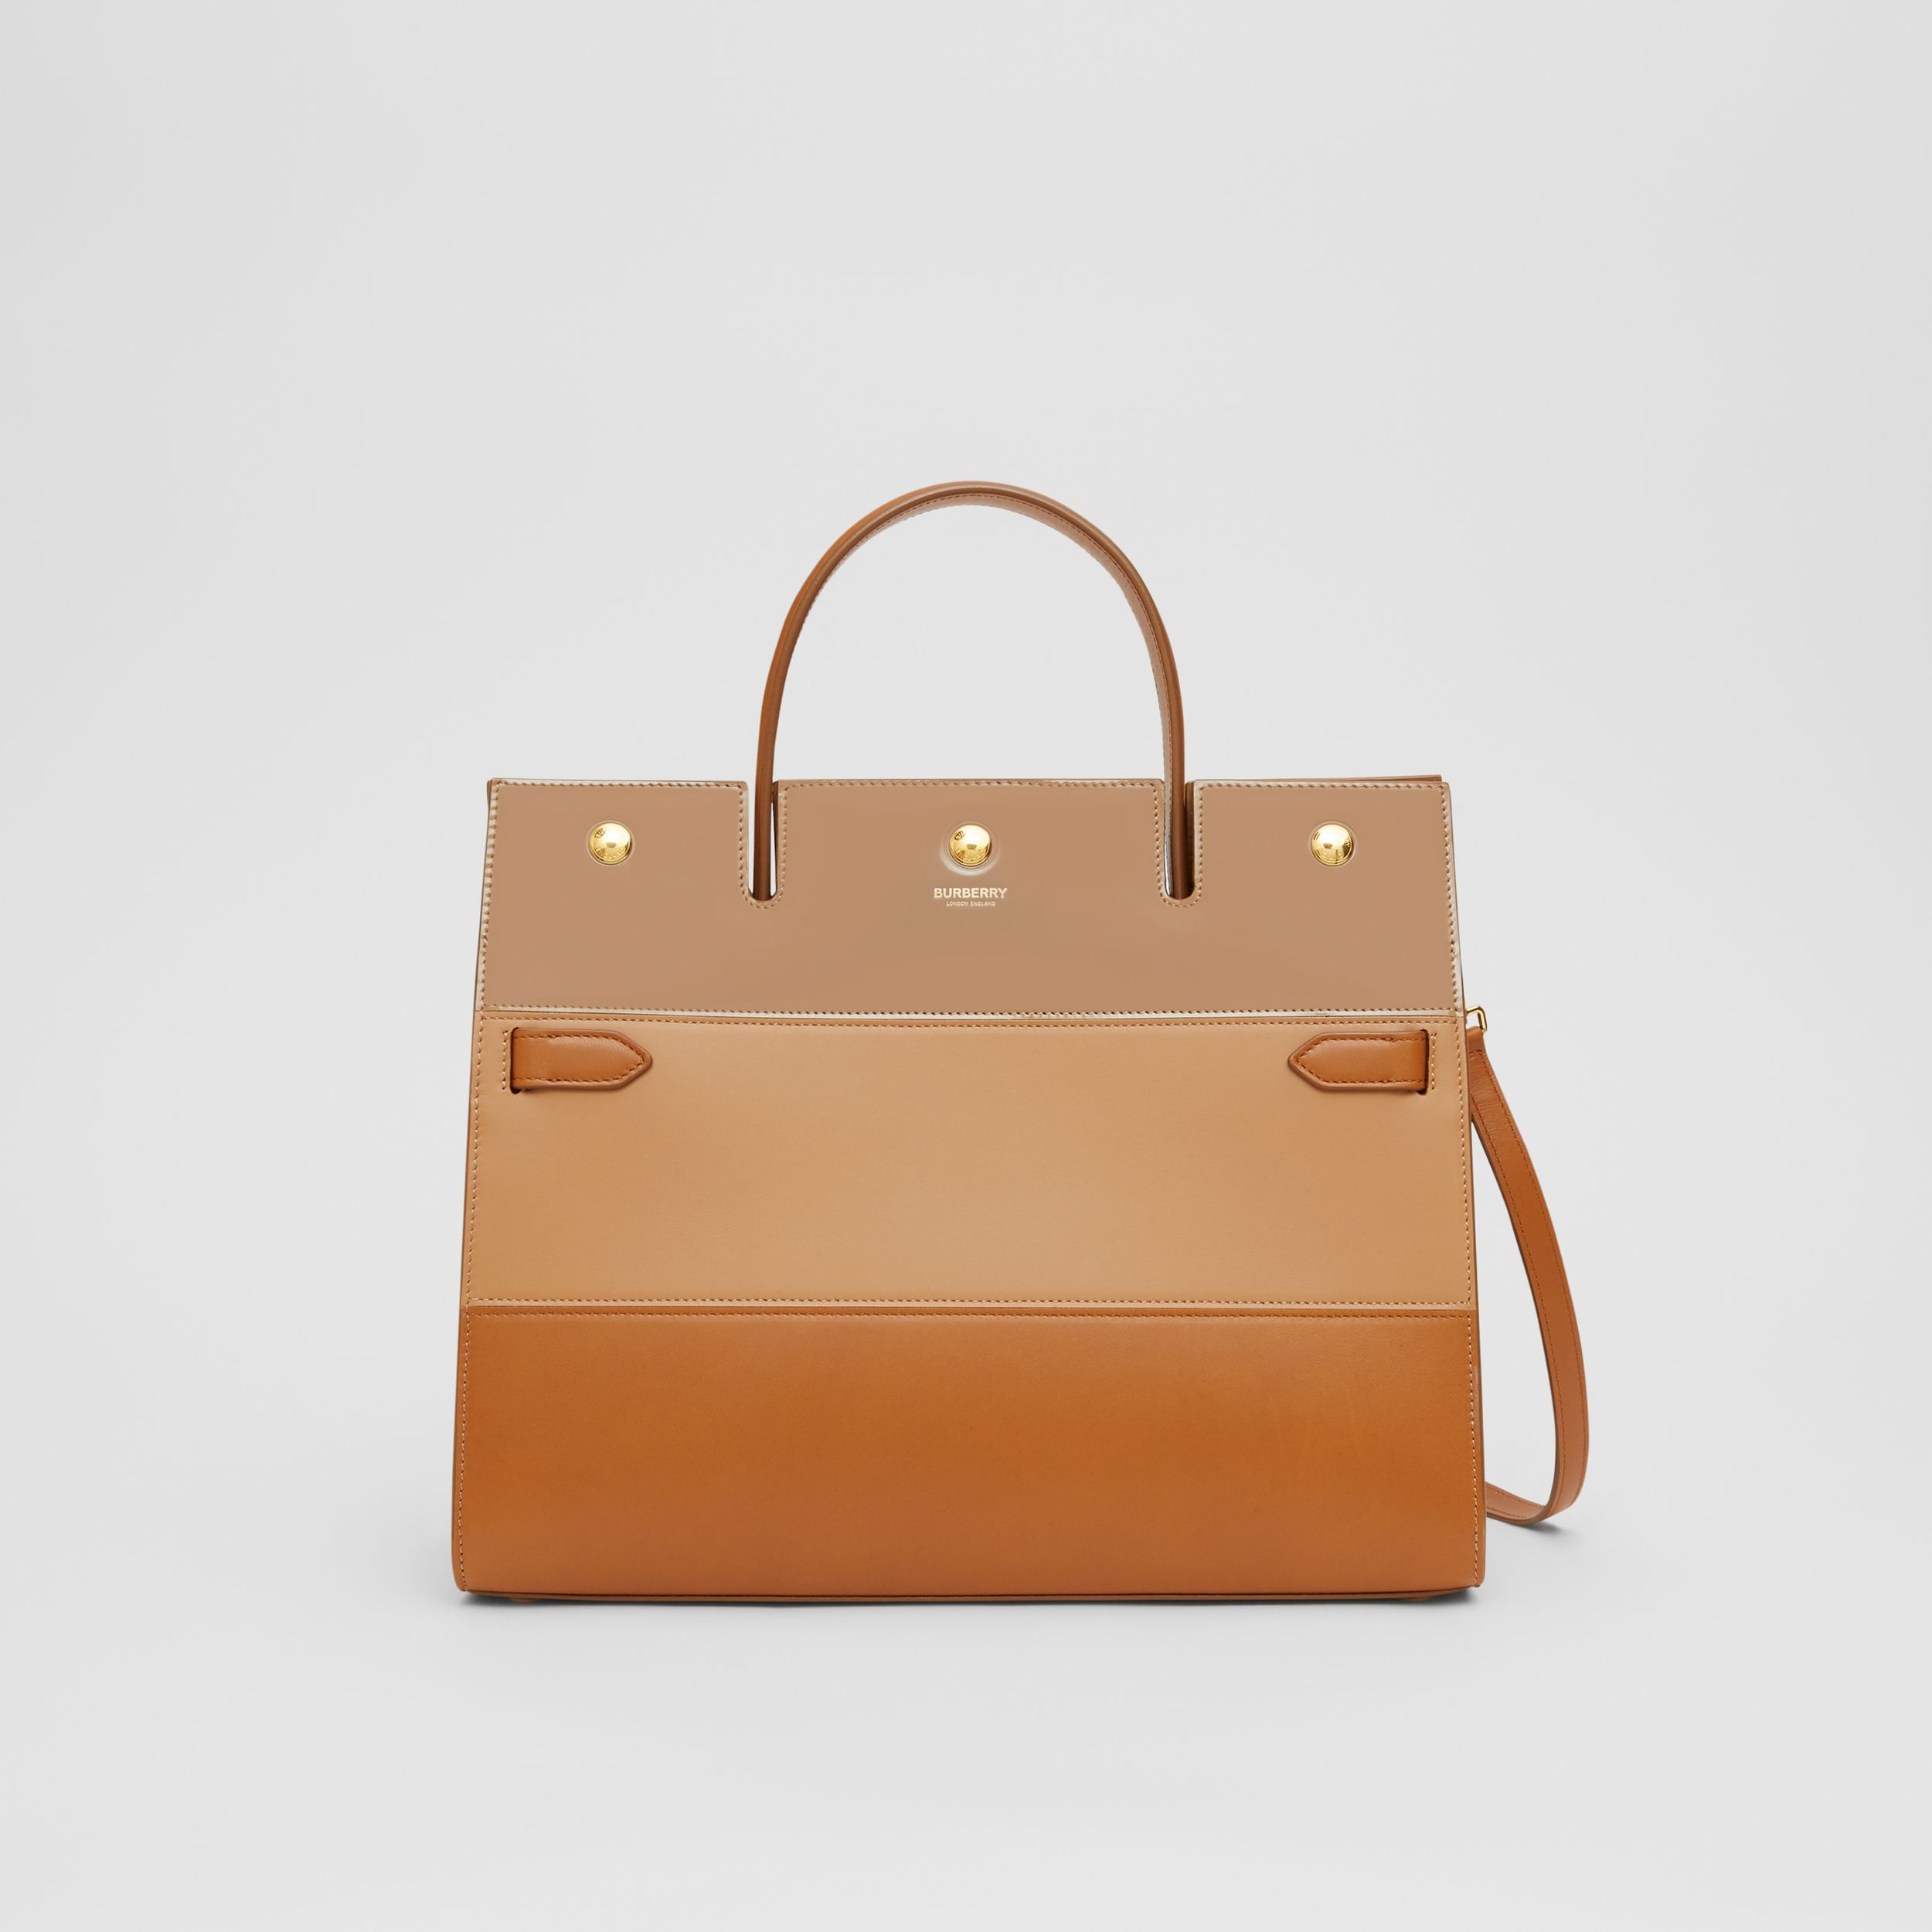 Medium Panelled Leather Title Bag in Soft Fawn - Women | Burberry - 1